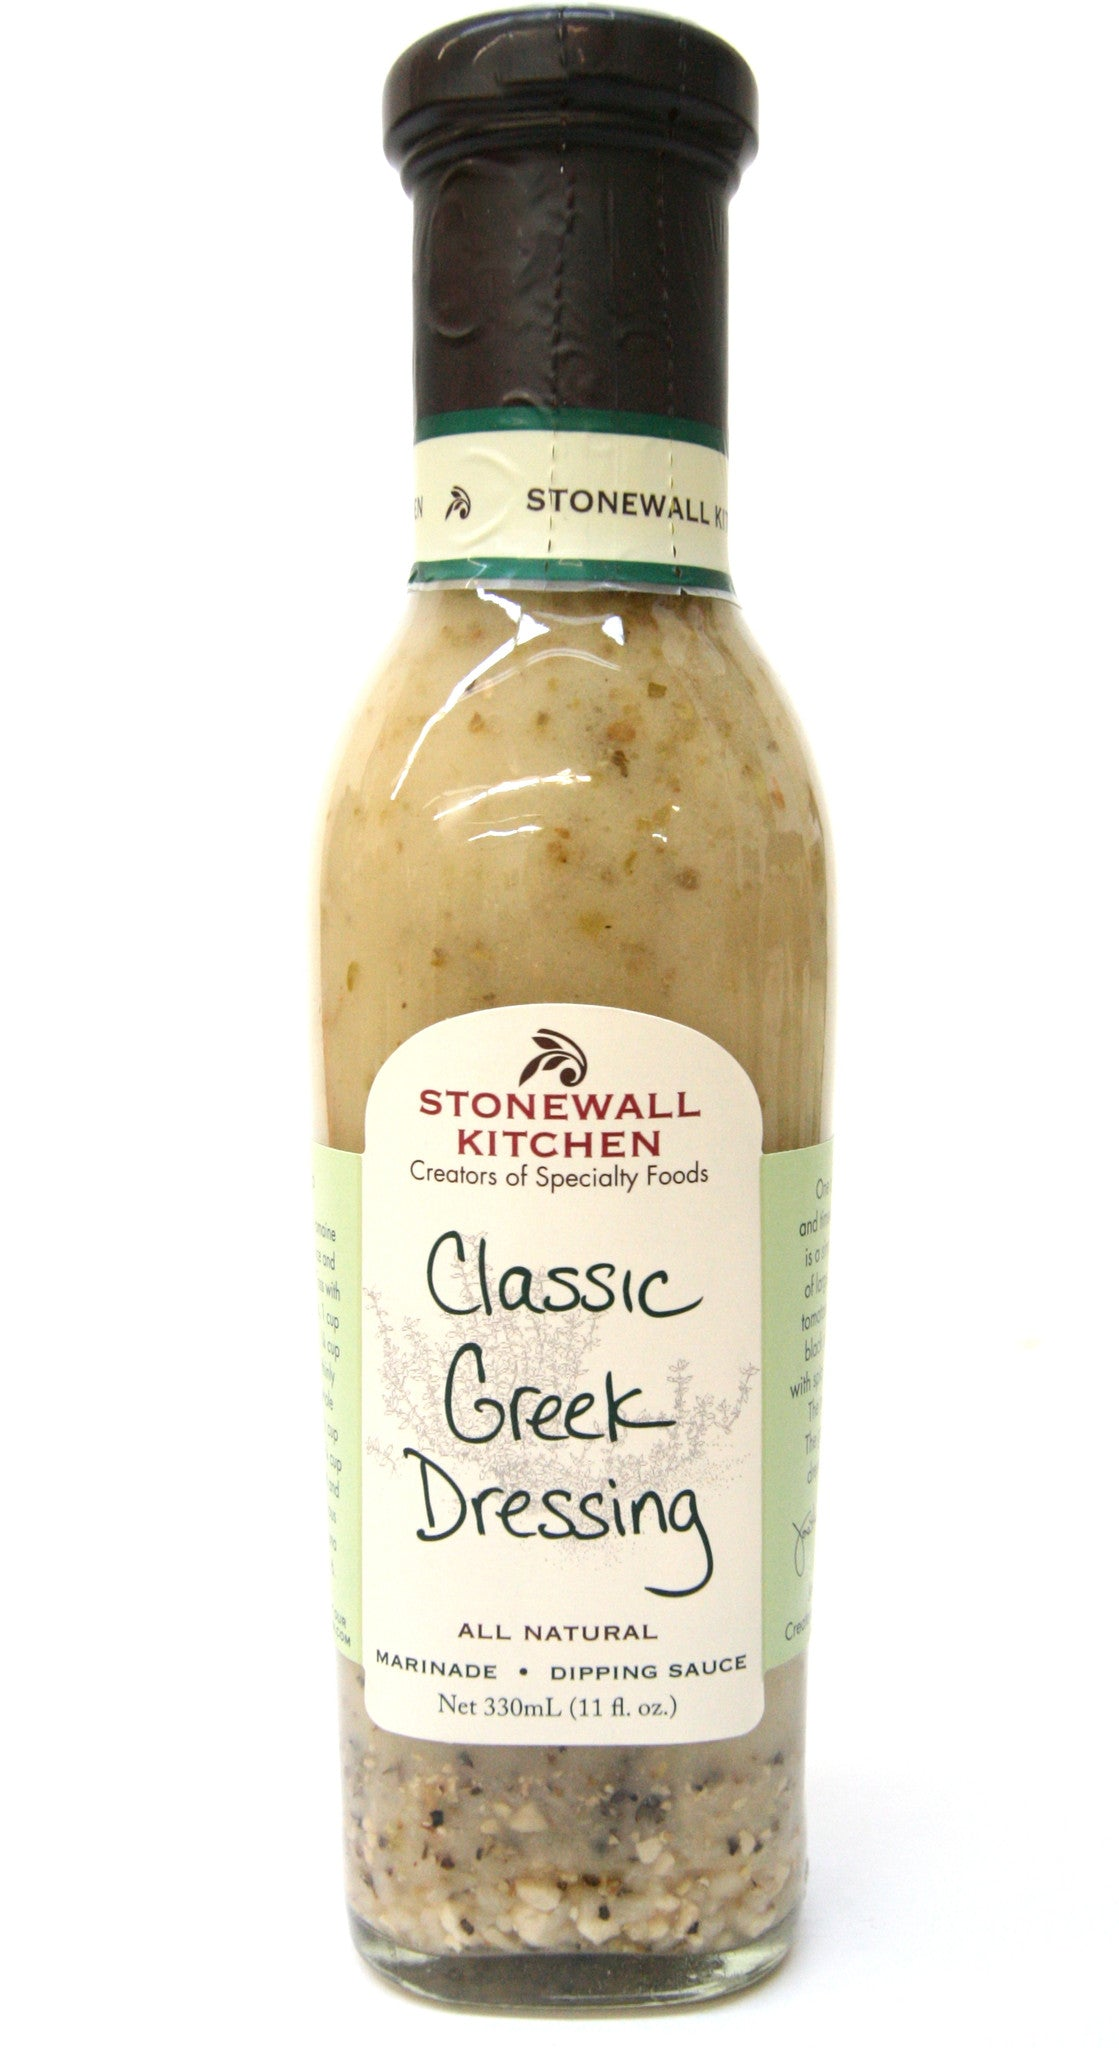 Stonewall Kitchen Classic Greek Dressing countrymercantile